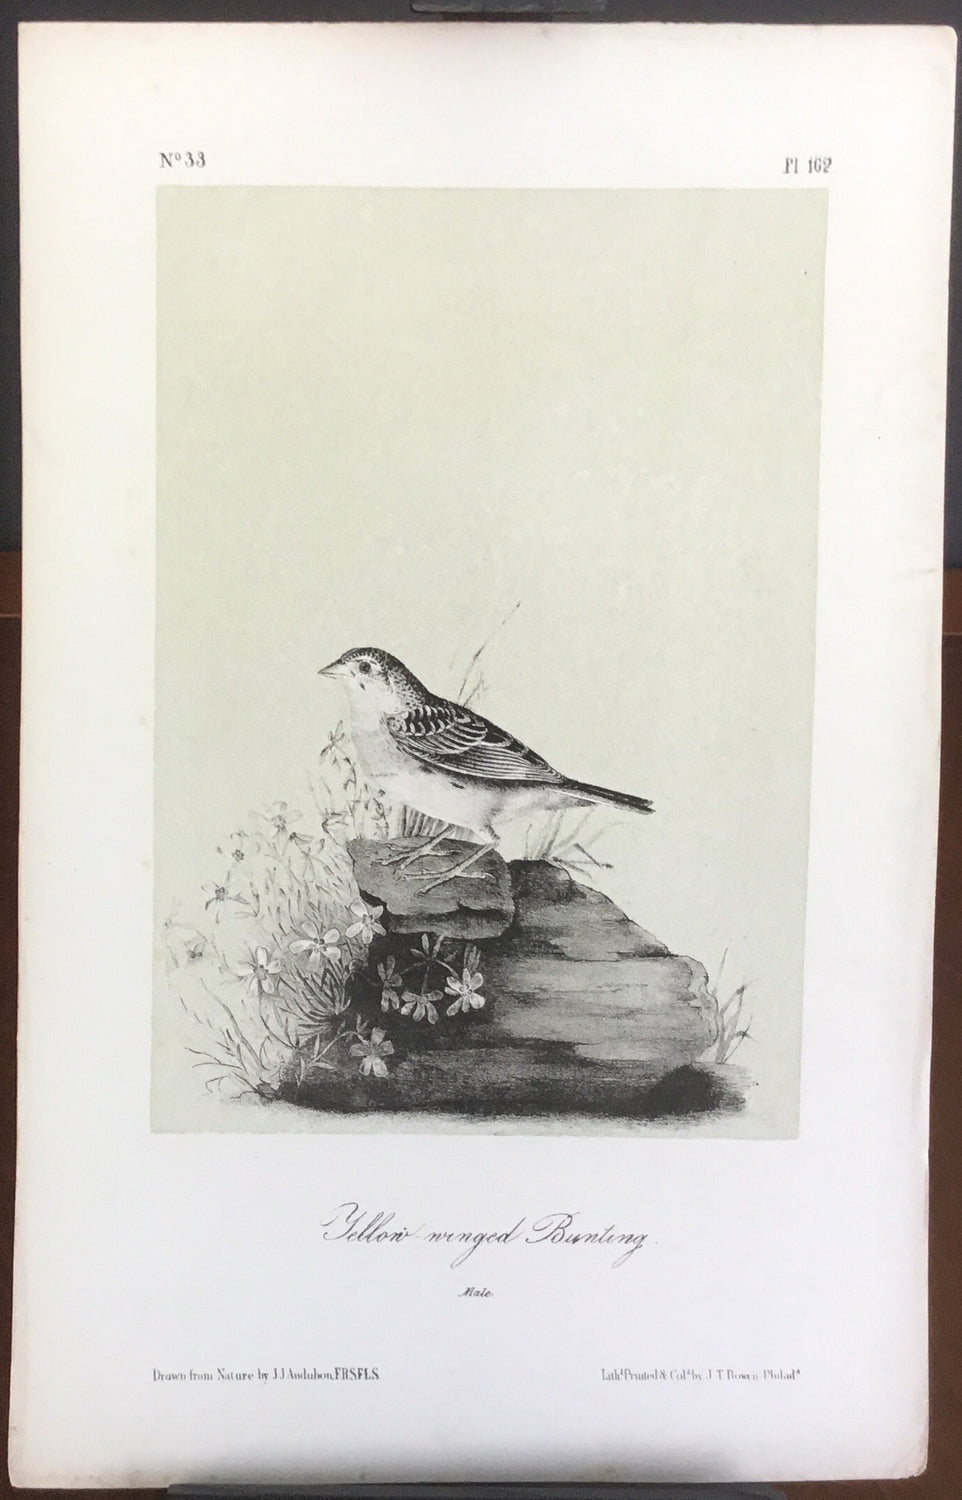 Audubon Octavo Yellow-winged Bunting, plate 162, uncolored test sheet, 7 x 11